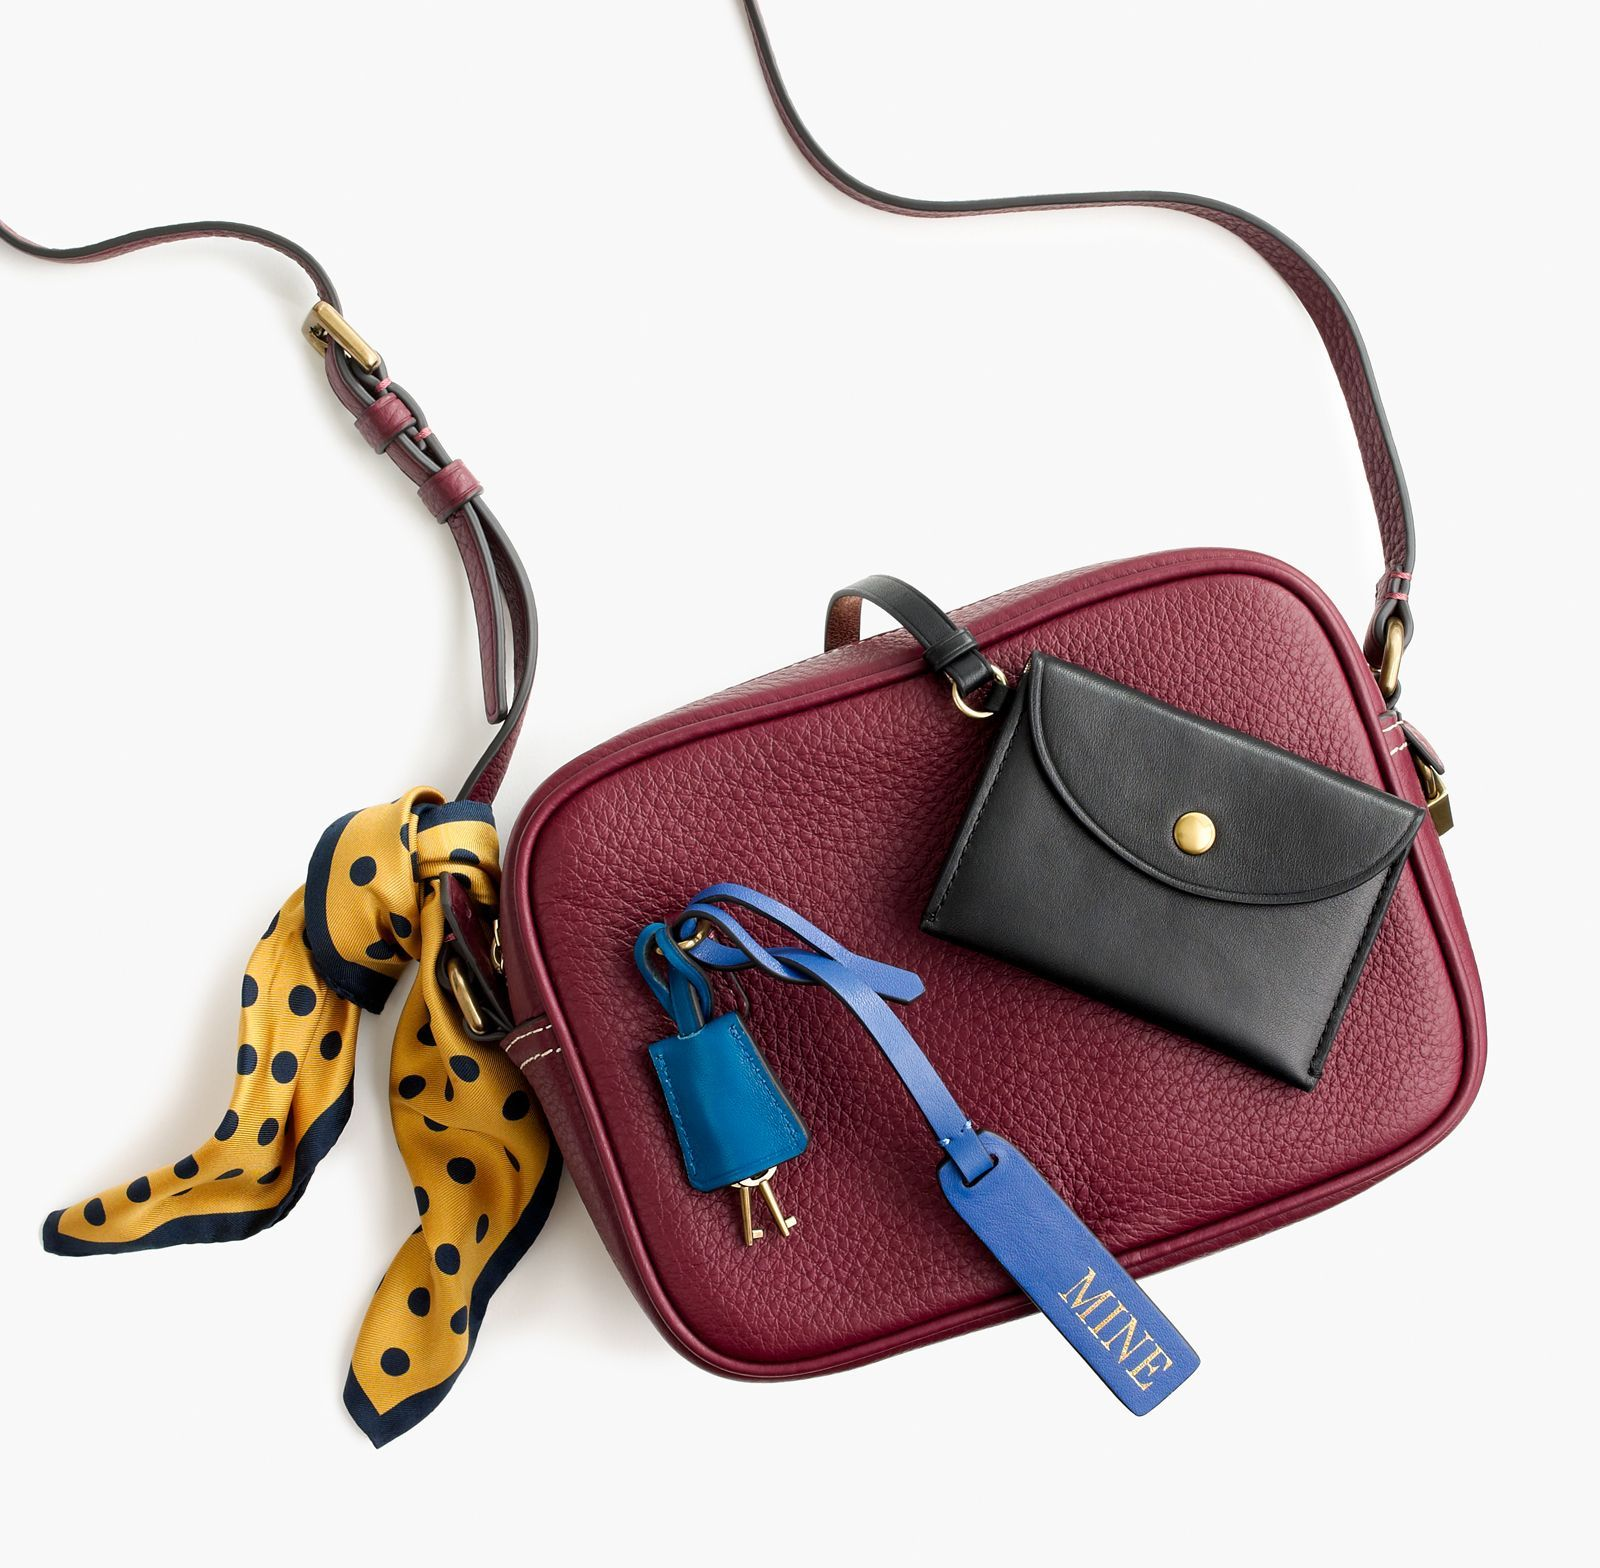 J Crew S New Handbags Are Easy To Wear Style Personalize Refinery29